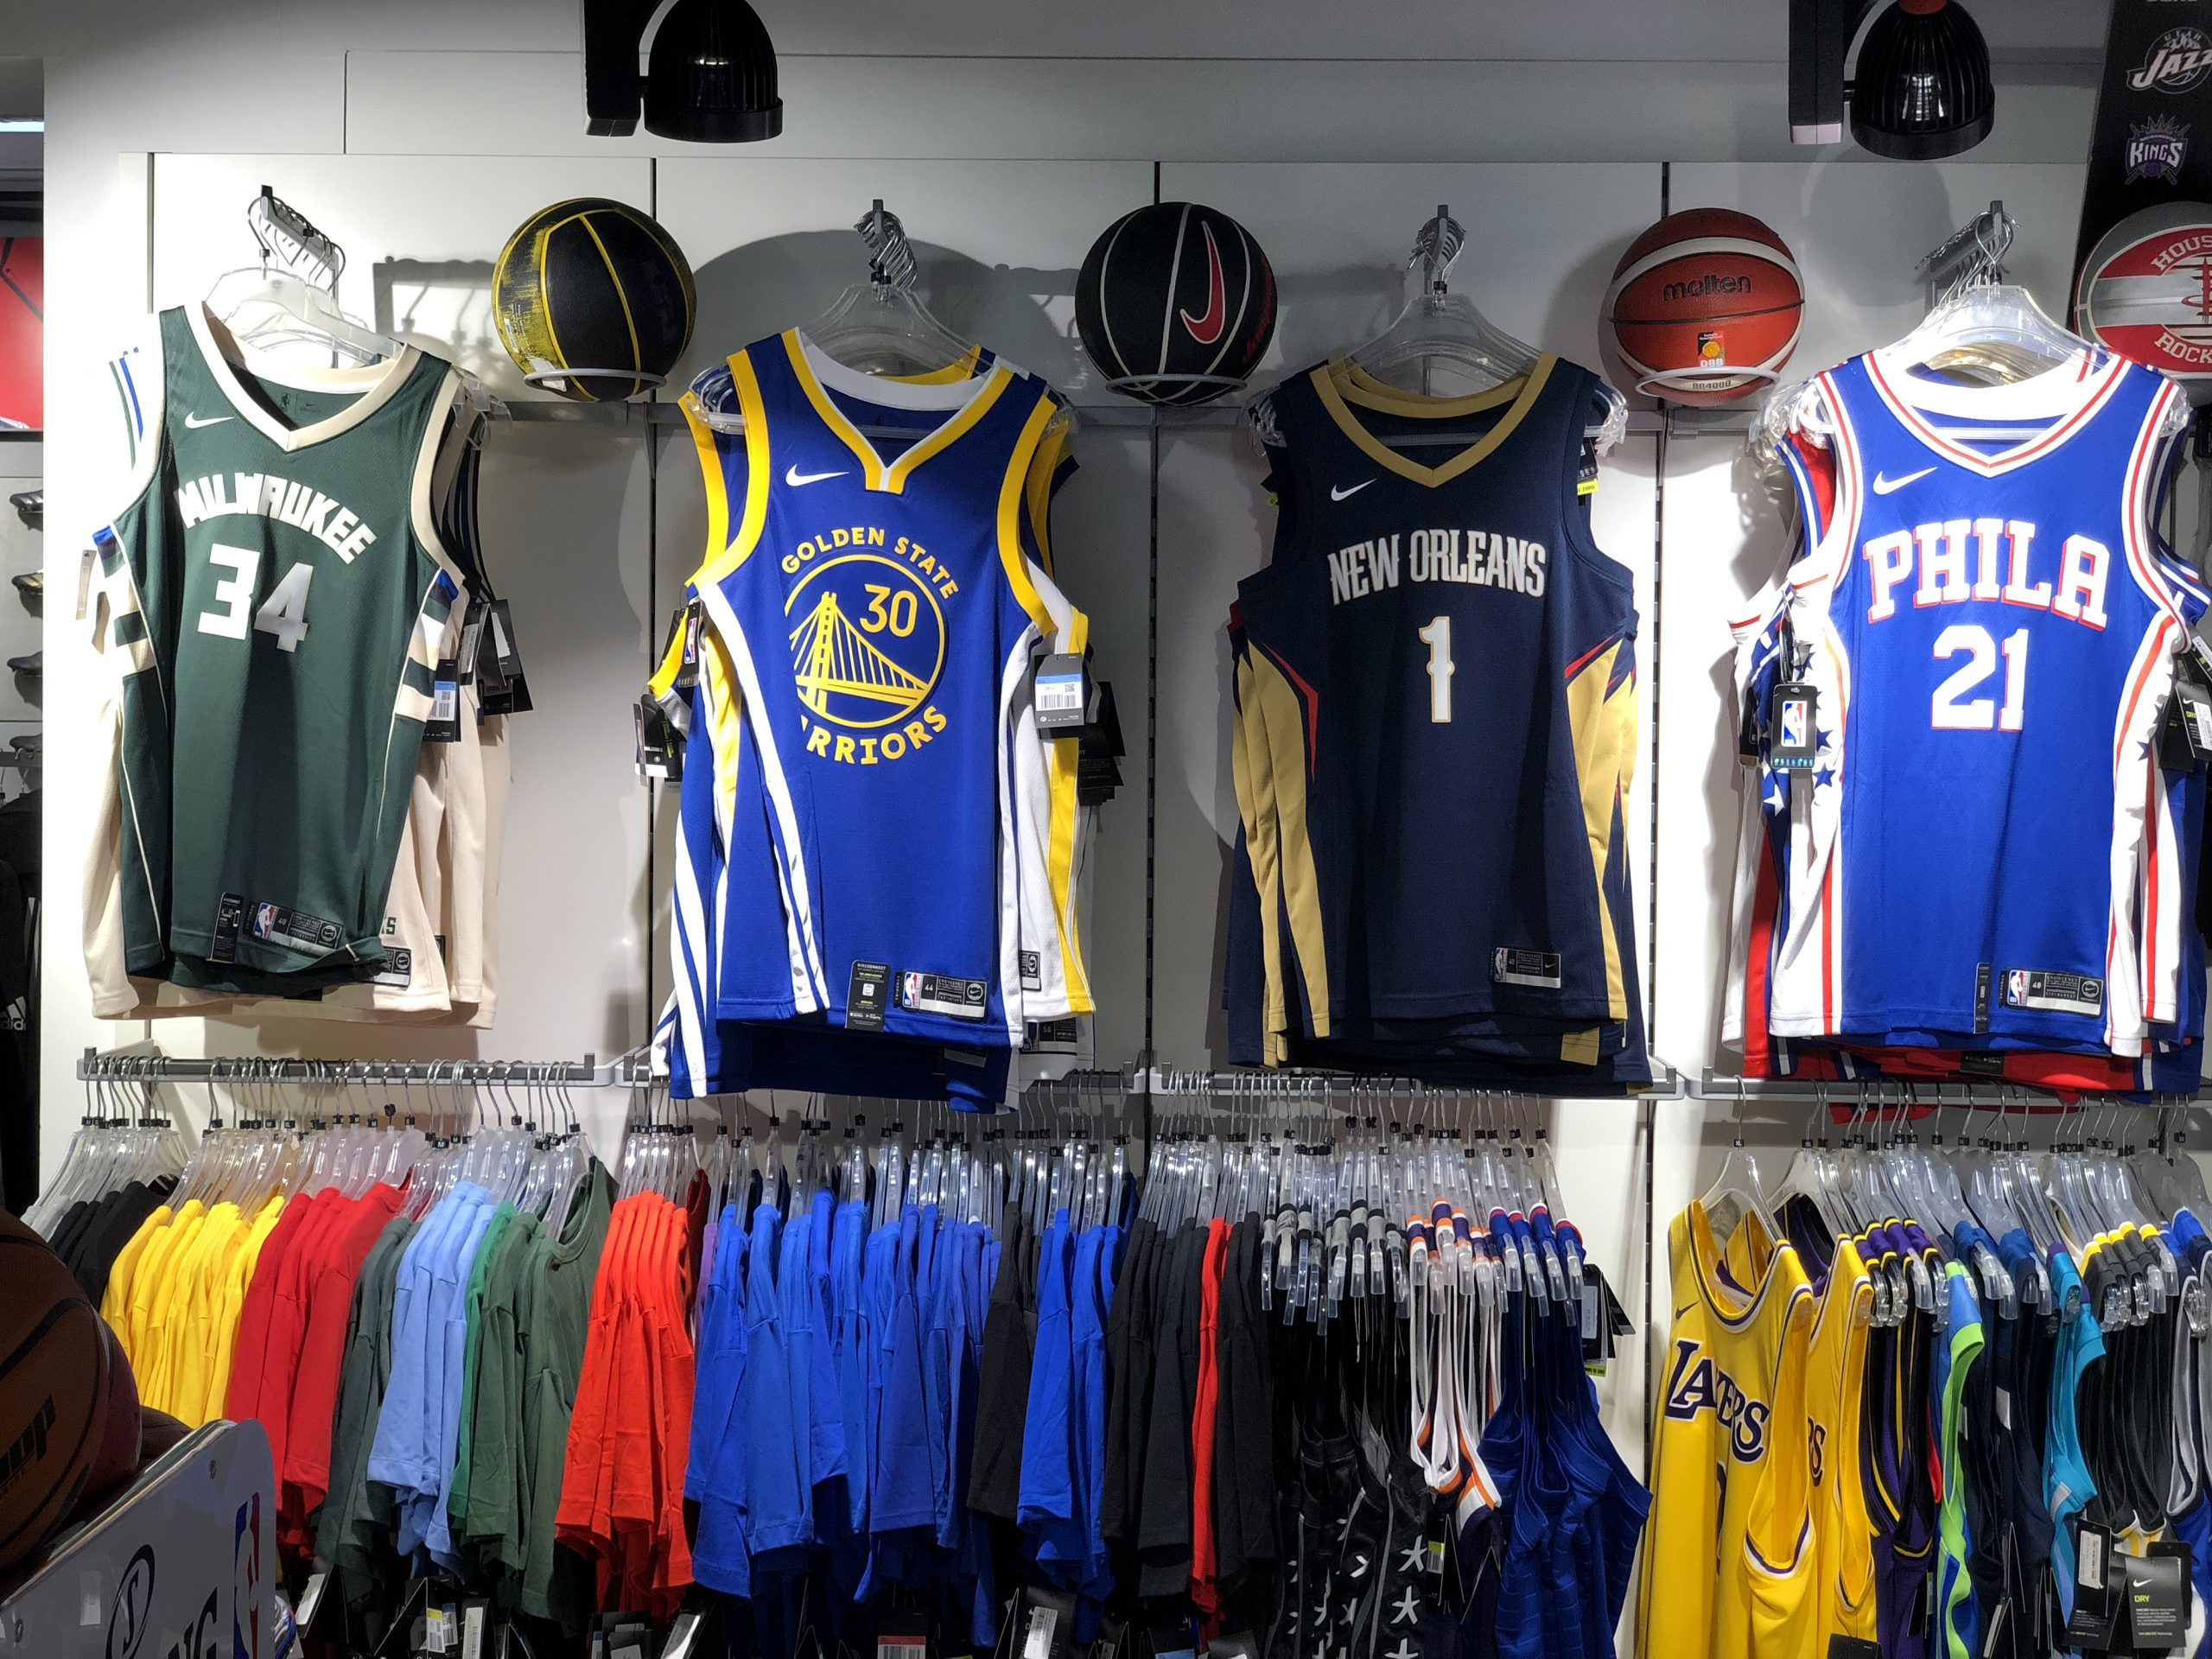 Basketballjerseys